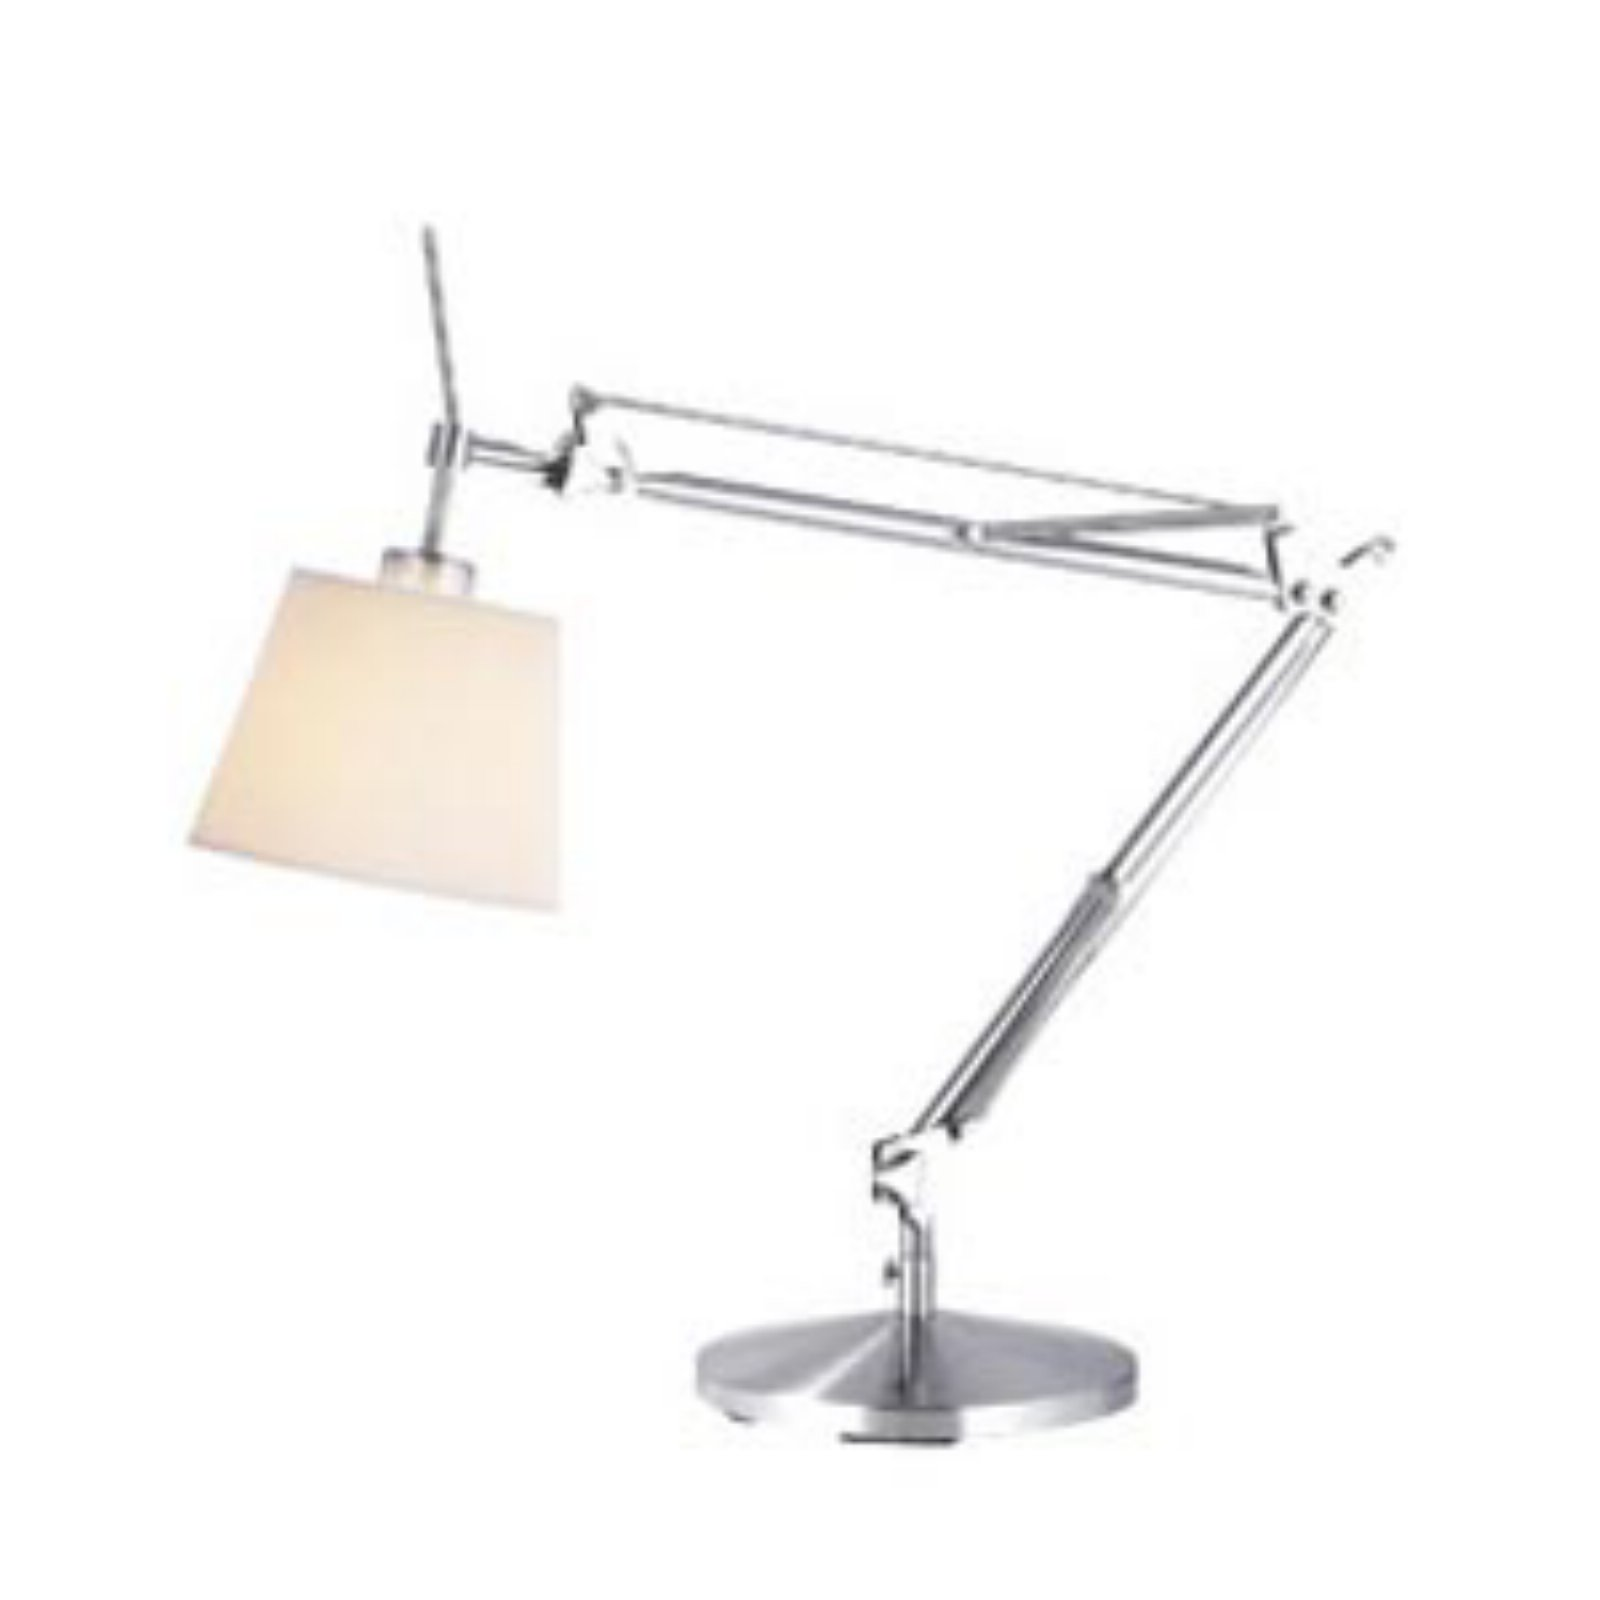 Adesso Architect Desk Lamp   Brushed Steel